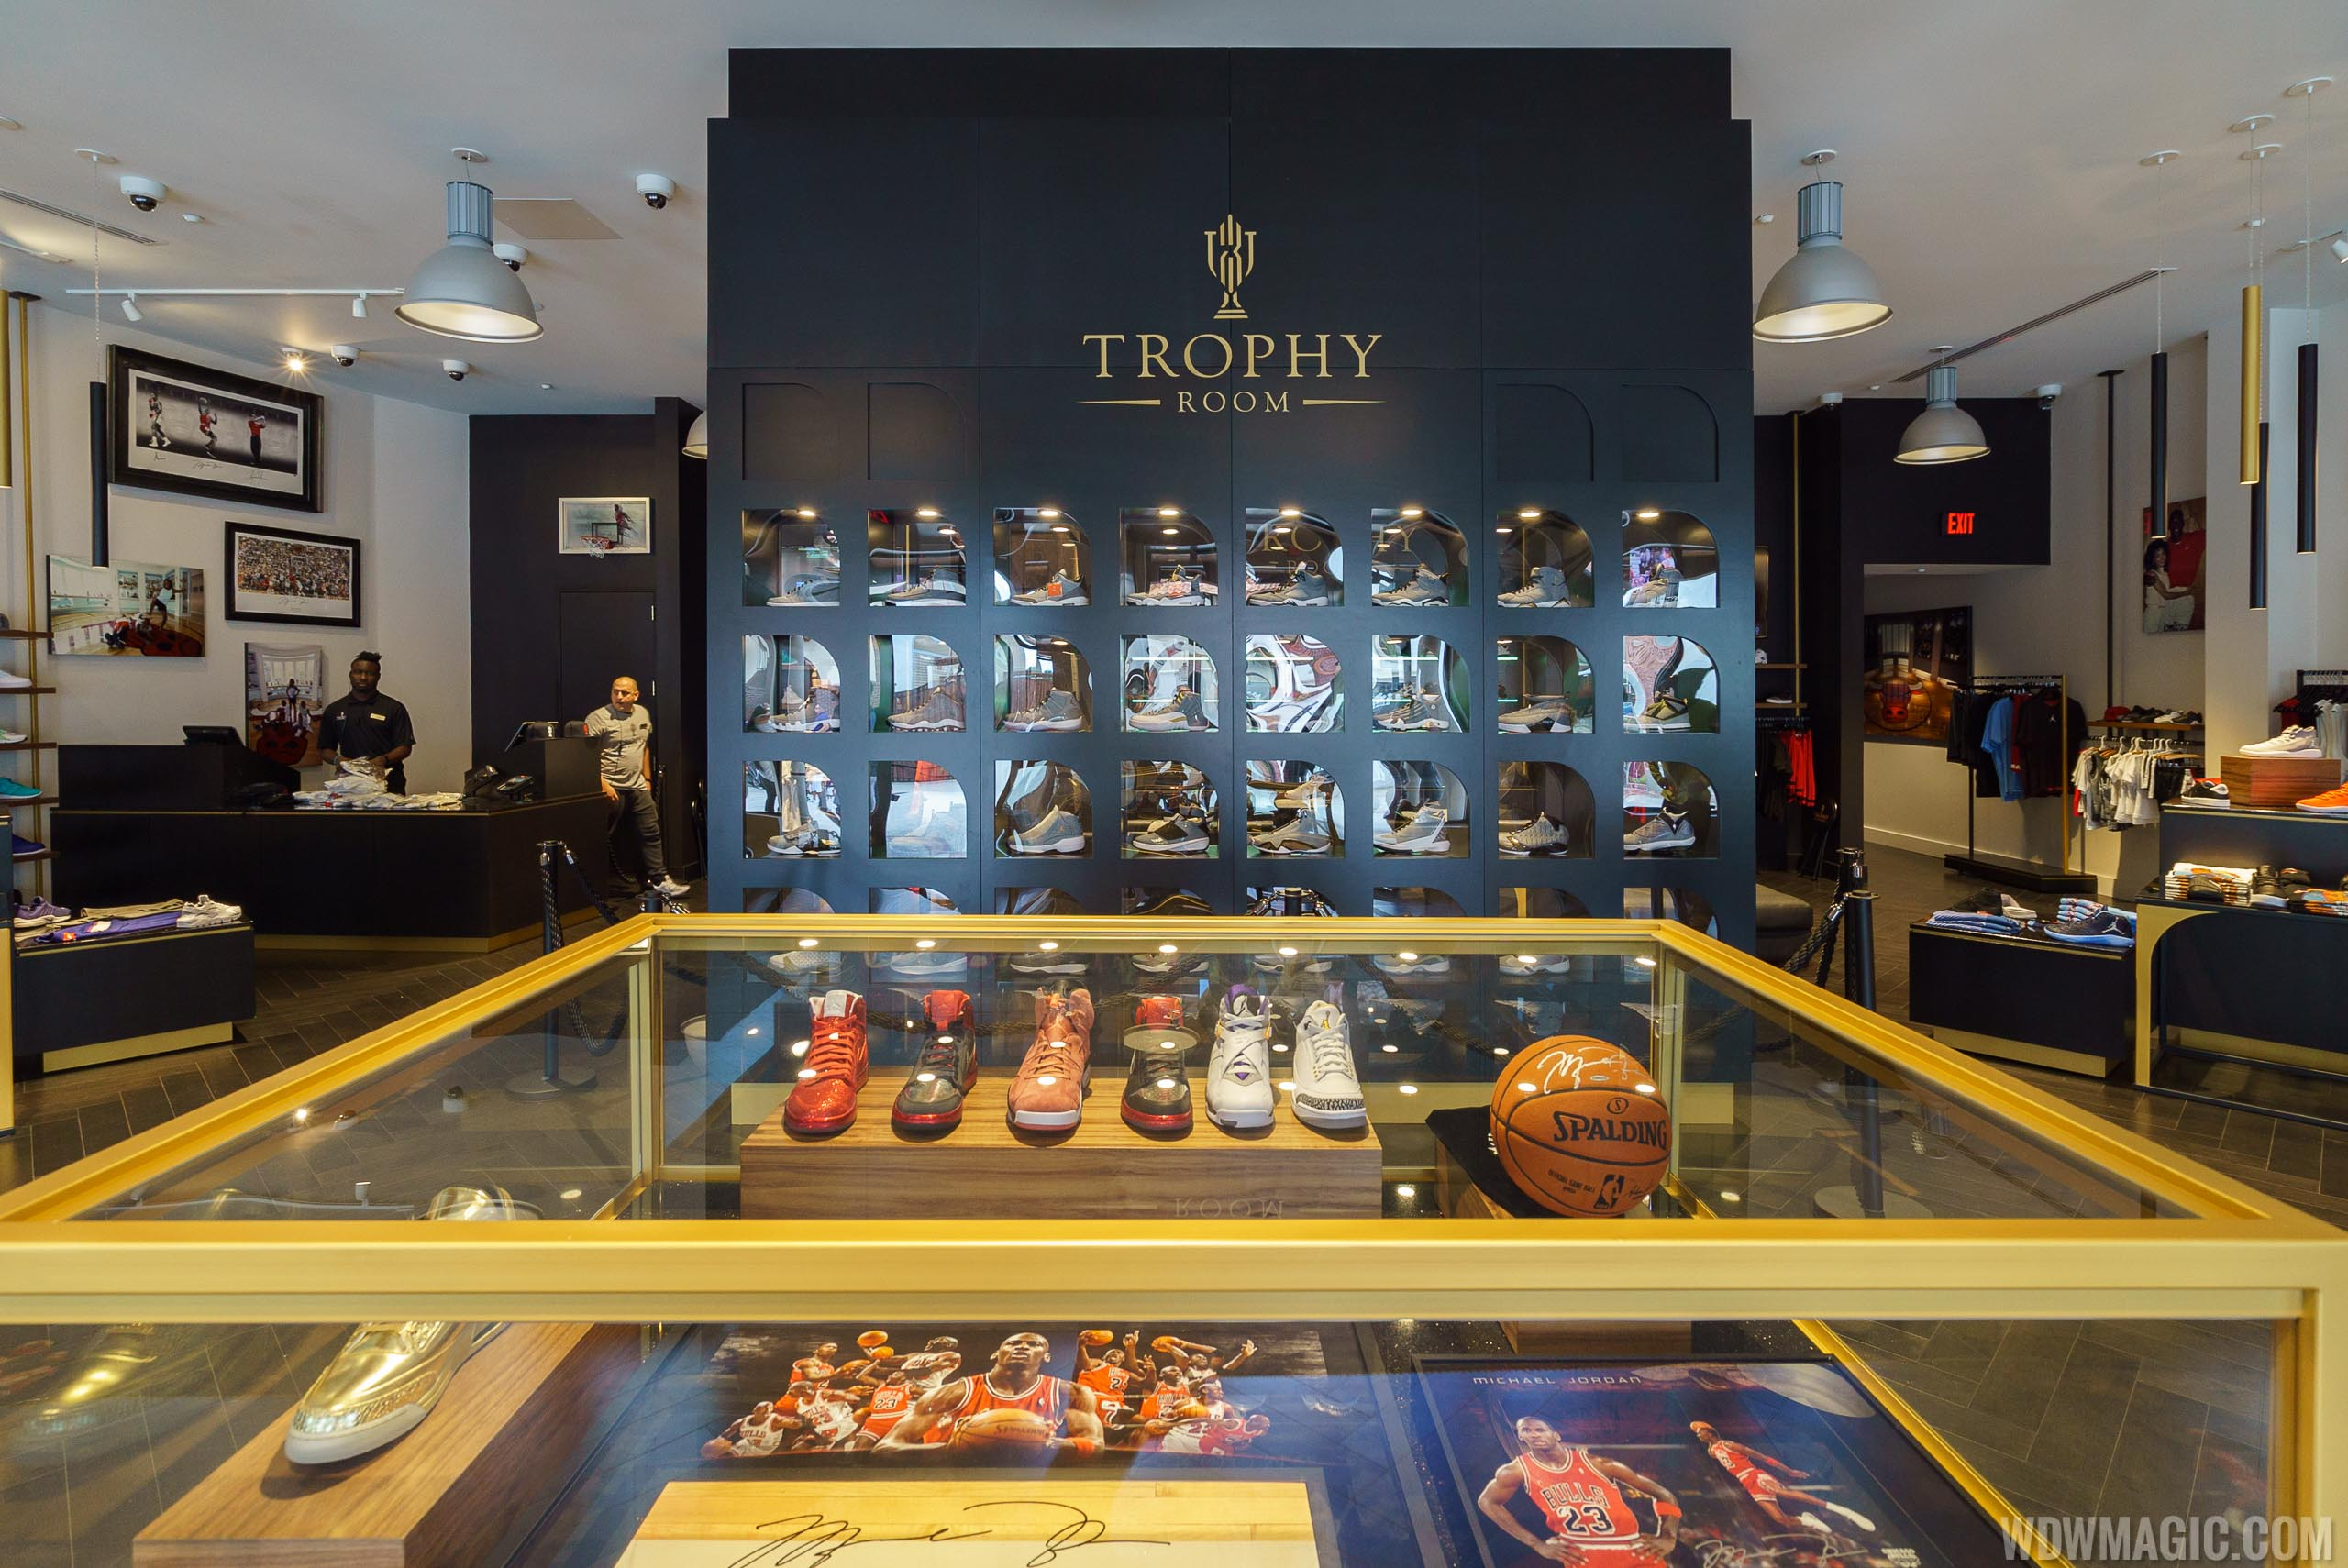 Trophy Room at Disney Springs to close